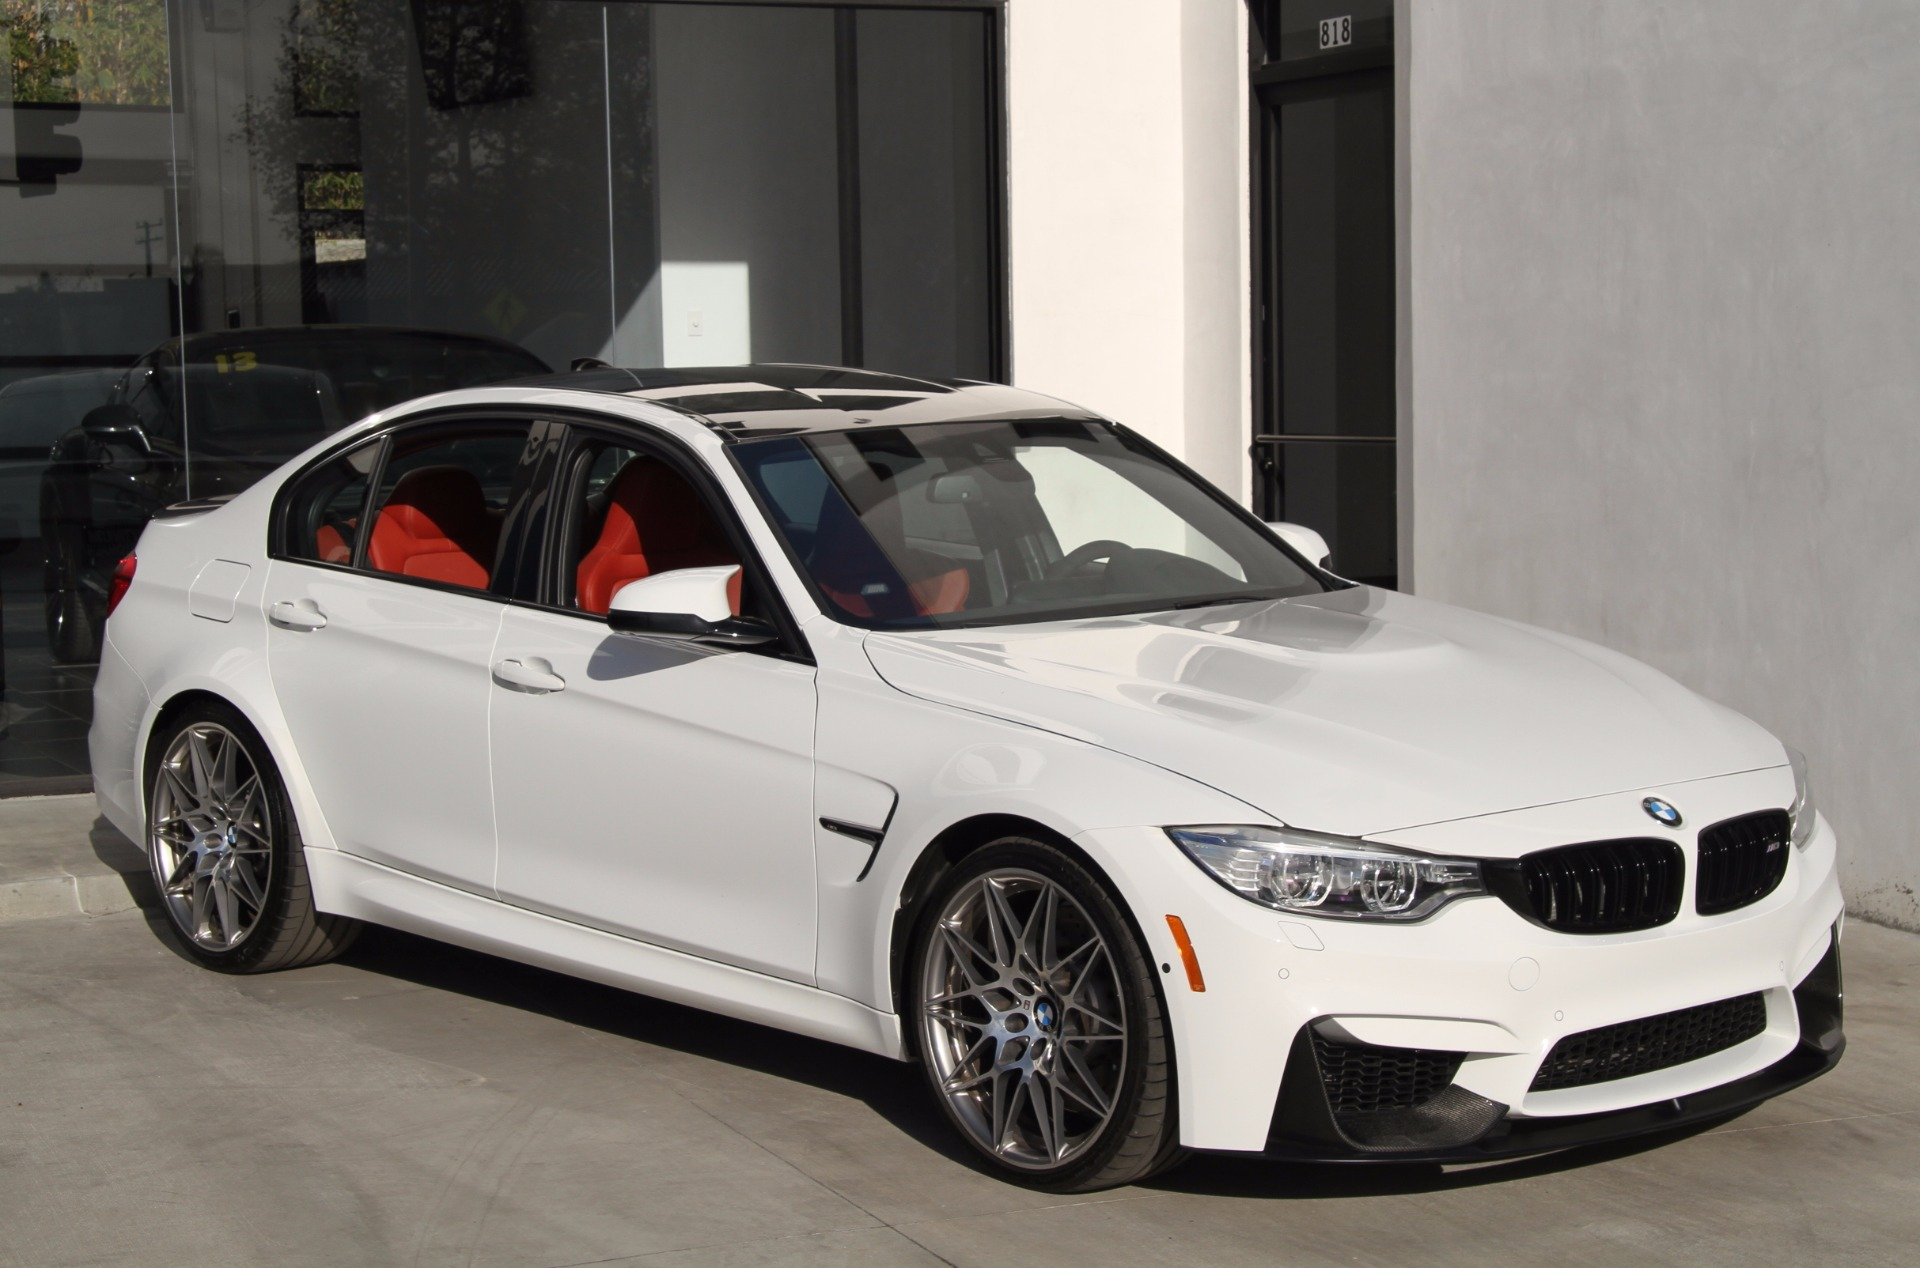 2016 bmw m3 competition package stock 6058 for sale near redondo beach ca ca bmw dealer. Black Bedroom Furniture Sets. Home Design Ideas